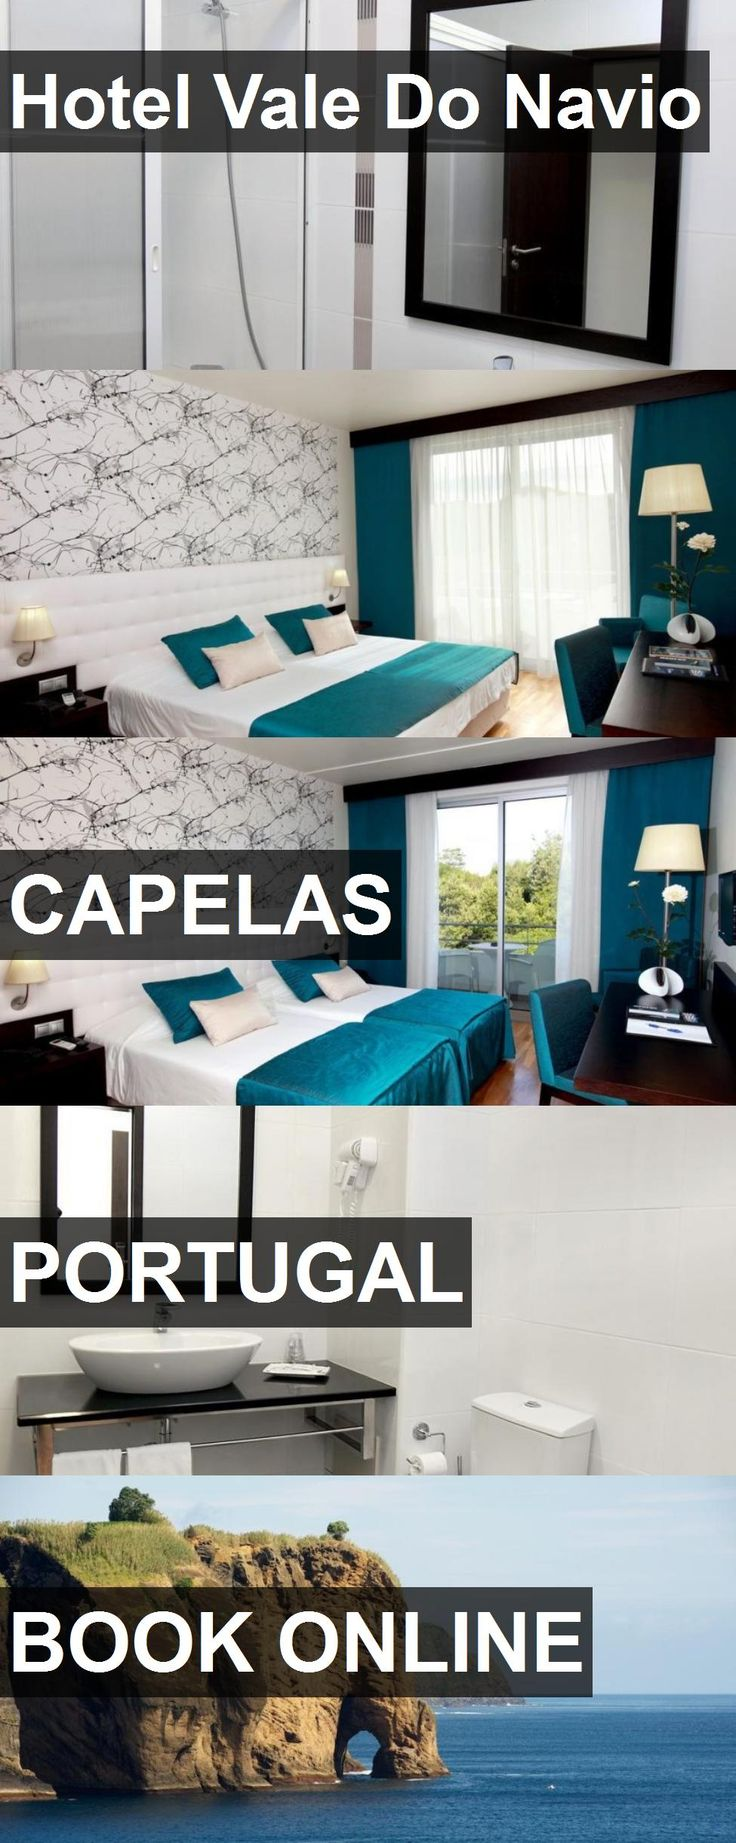 Hotel Vale Do Navio in Capelas, Portugal. For more information, photos, reviews and best prices please follow the link. #Portugal #Capelas #travel #vacation #hotel